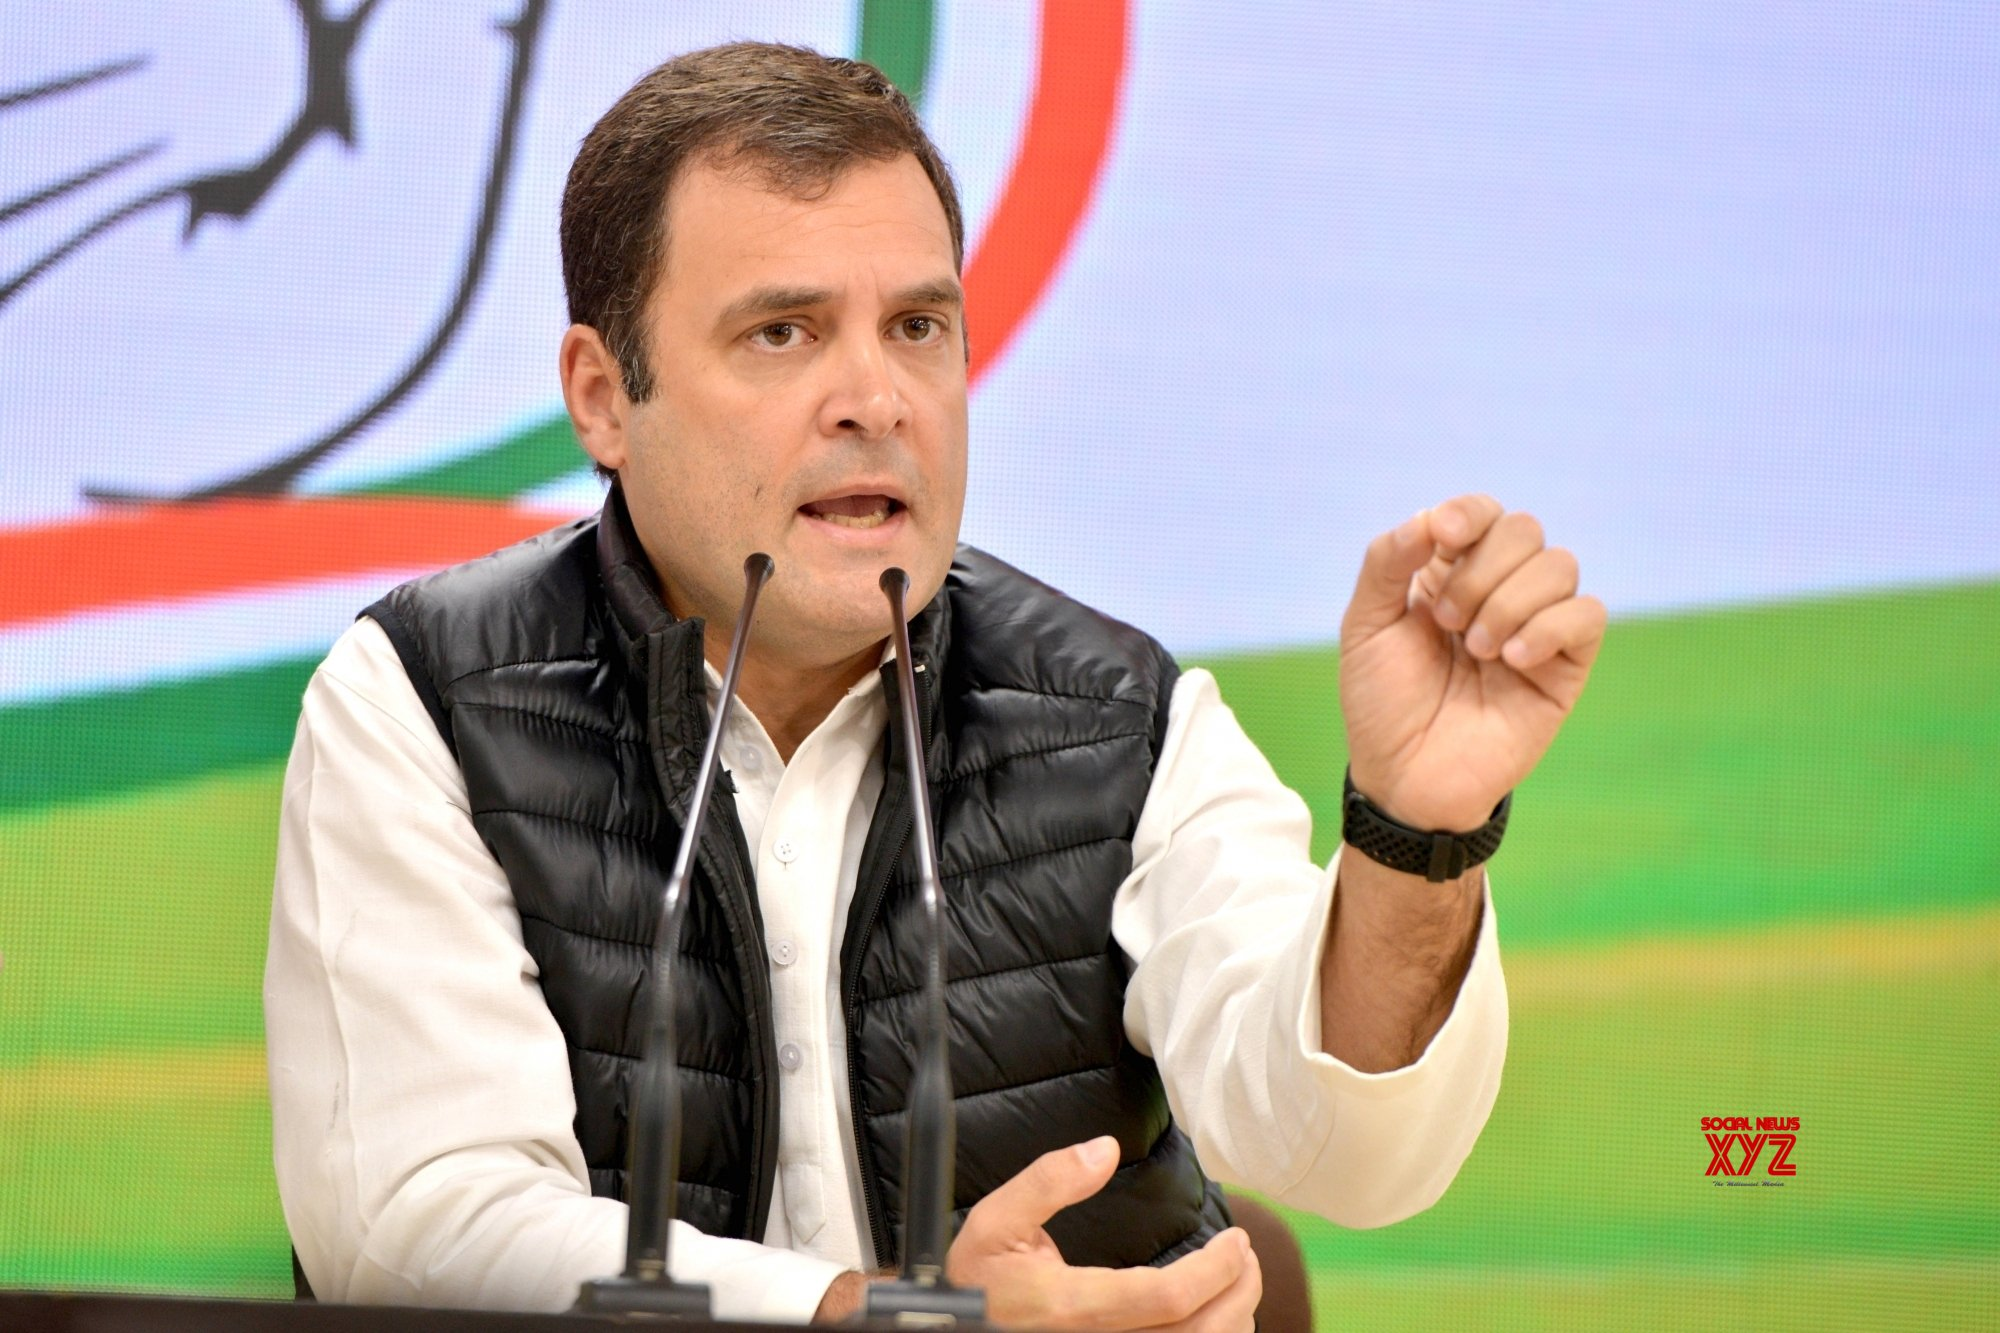 Govt will be forced to take back farm laws, says Rahul